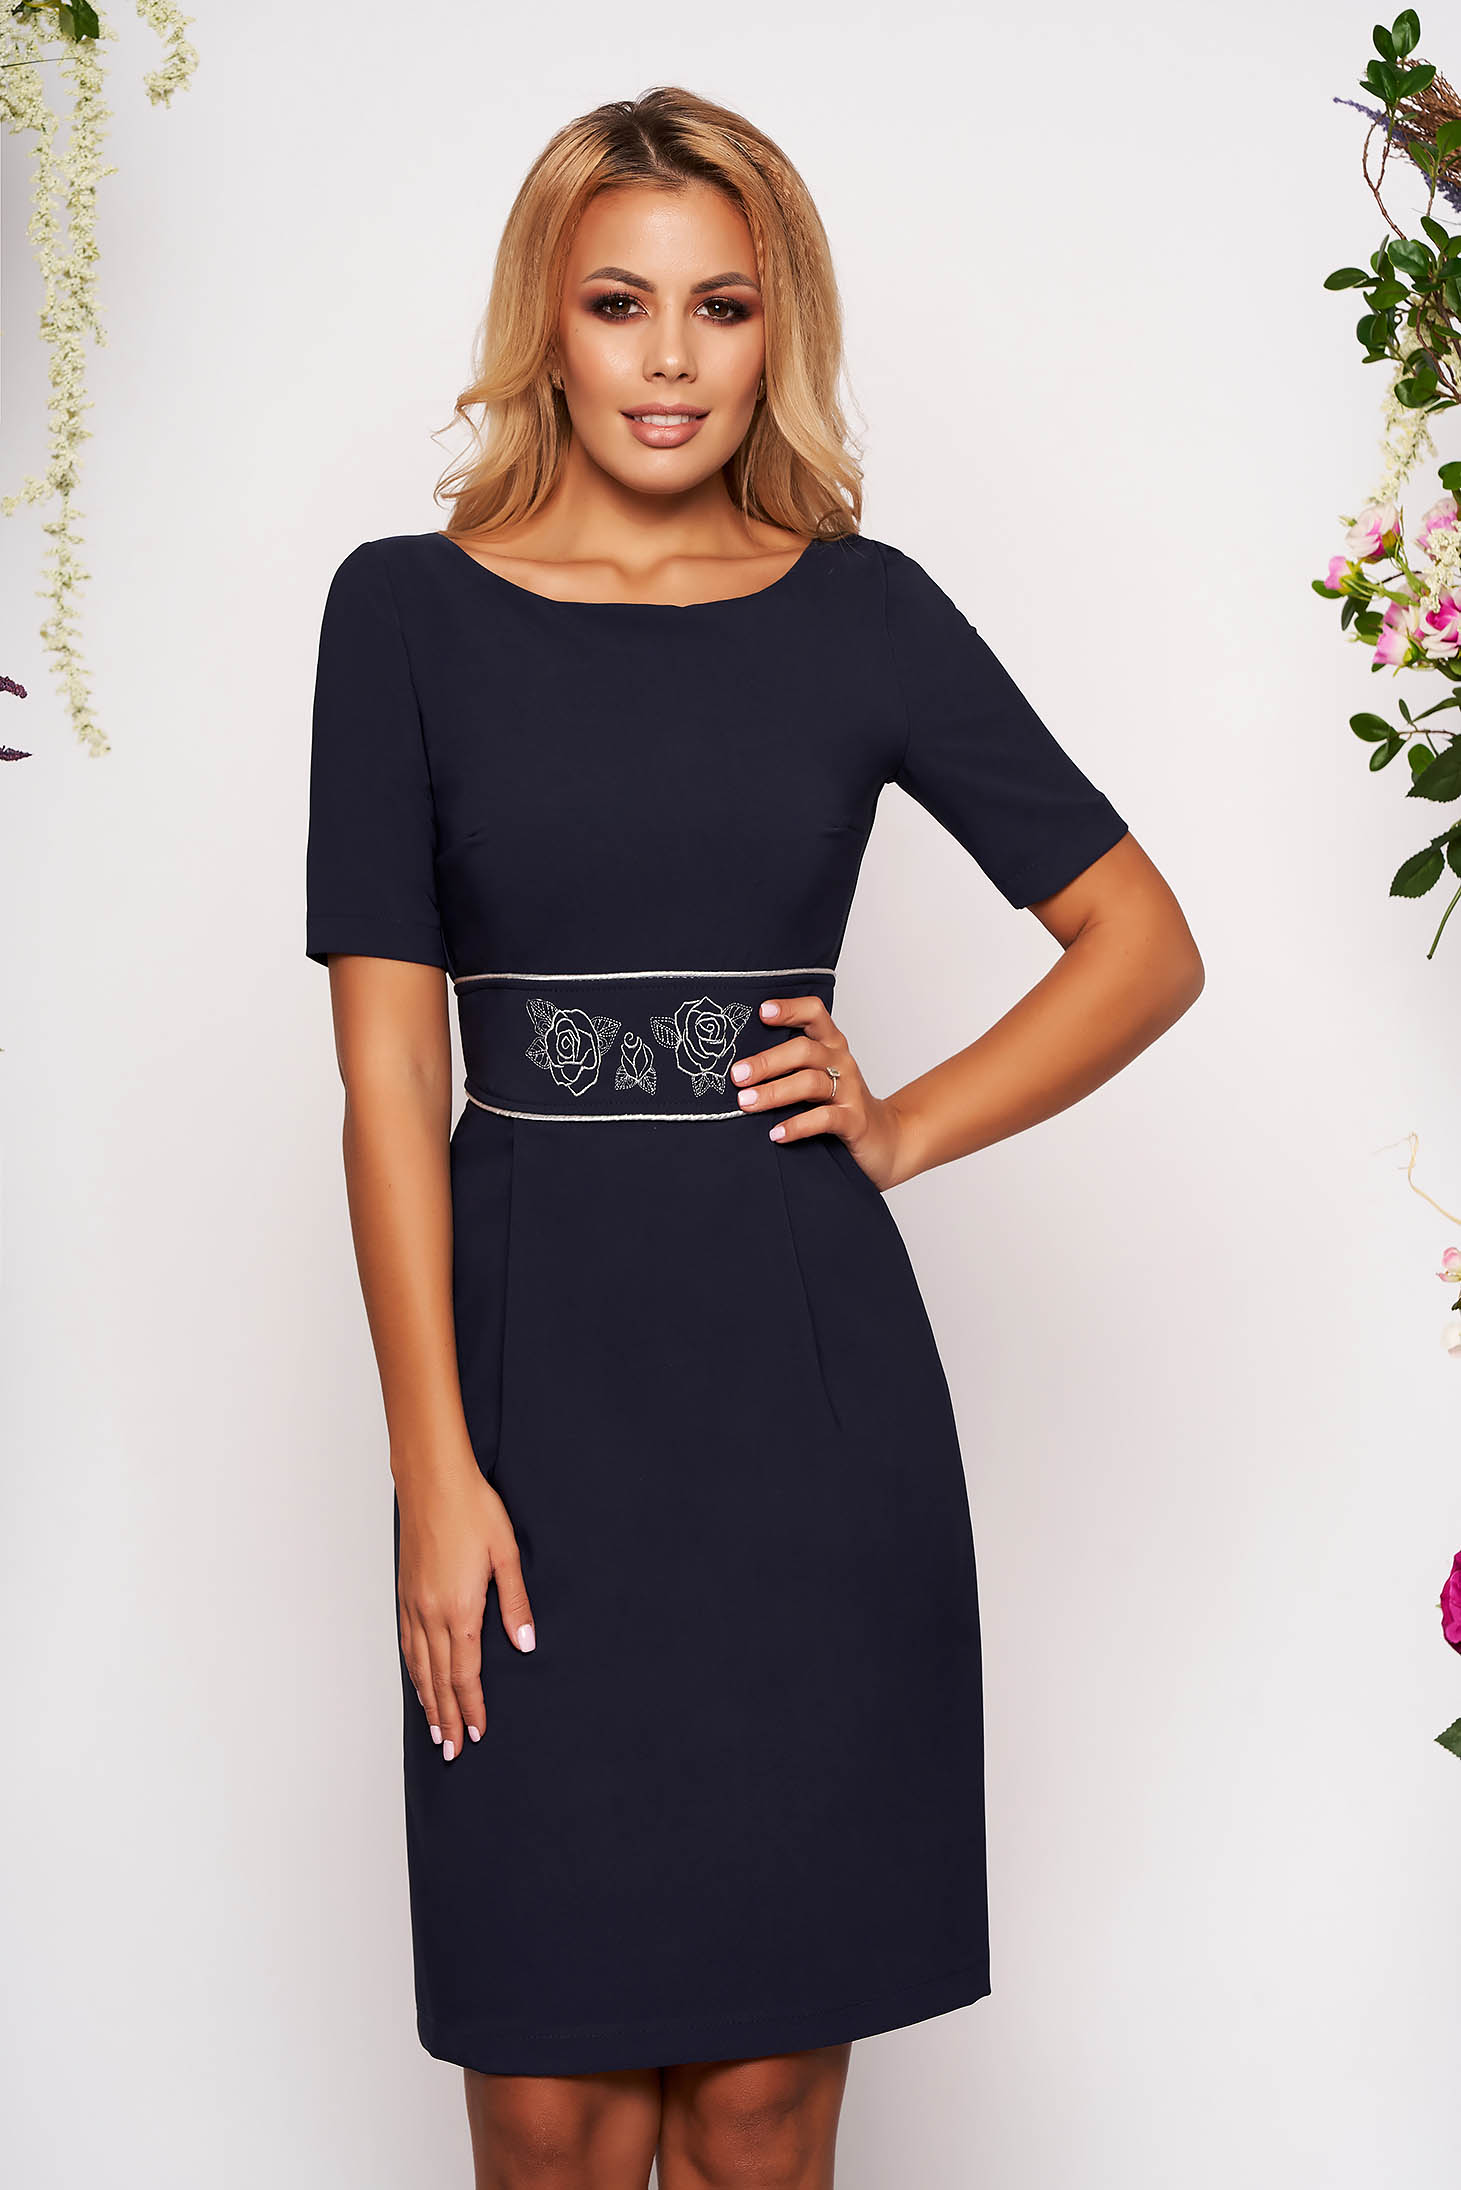 StarShinerS darkblue dress occasional short cut pencil cloth slightly elastic fabric short sleeves embroidered